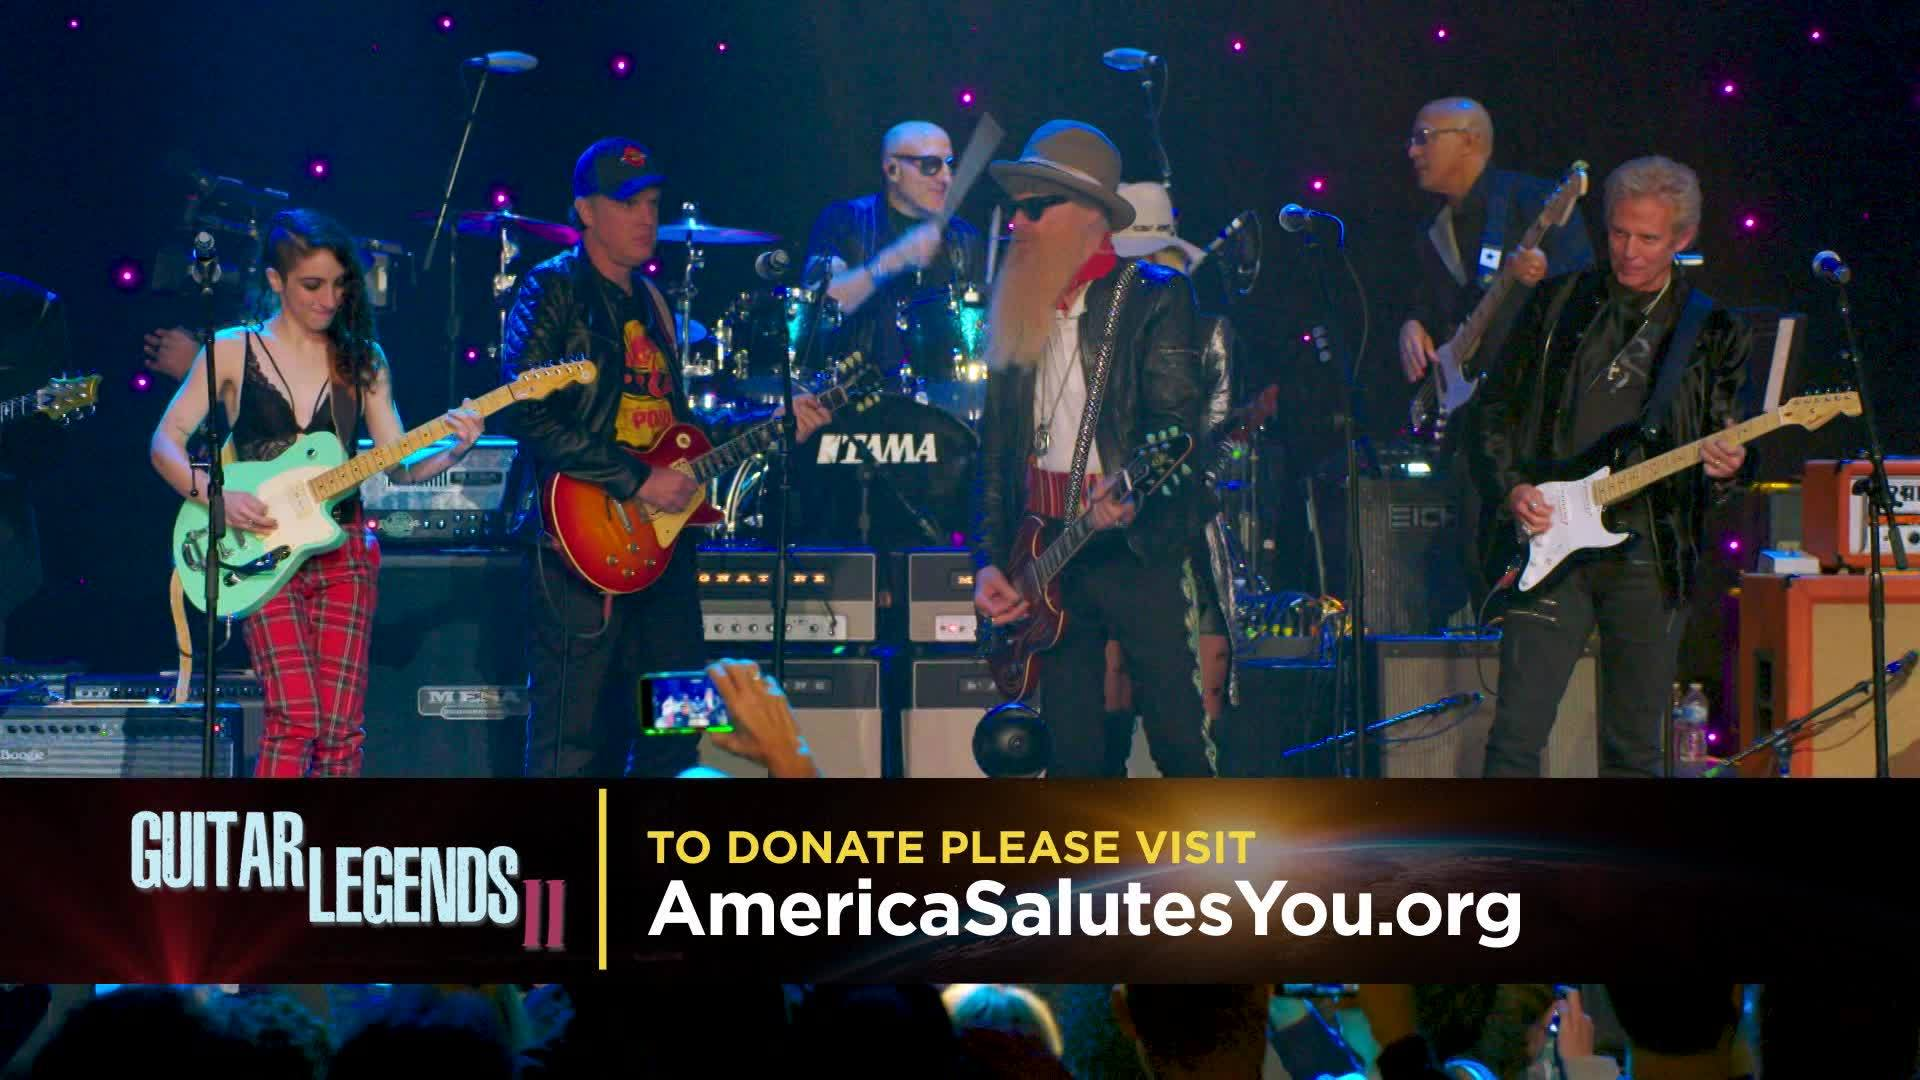 Be sure to catch the special presentation of America Salutes You Guitar Legends II on The Gulf Coast CW, this Saturday at 7PM!